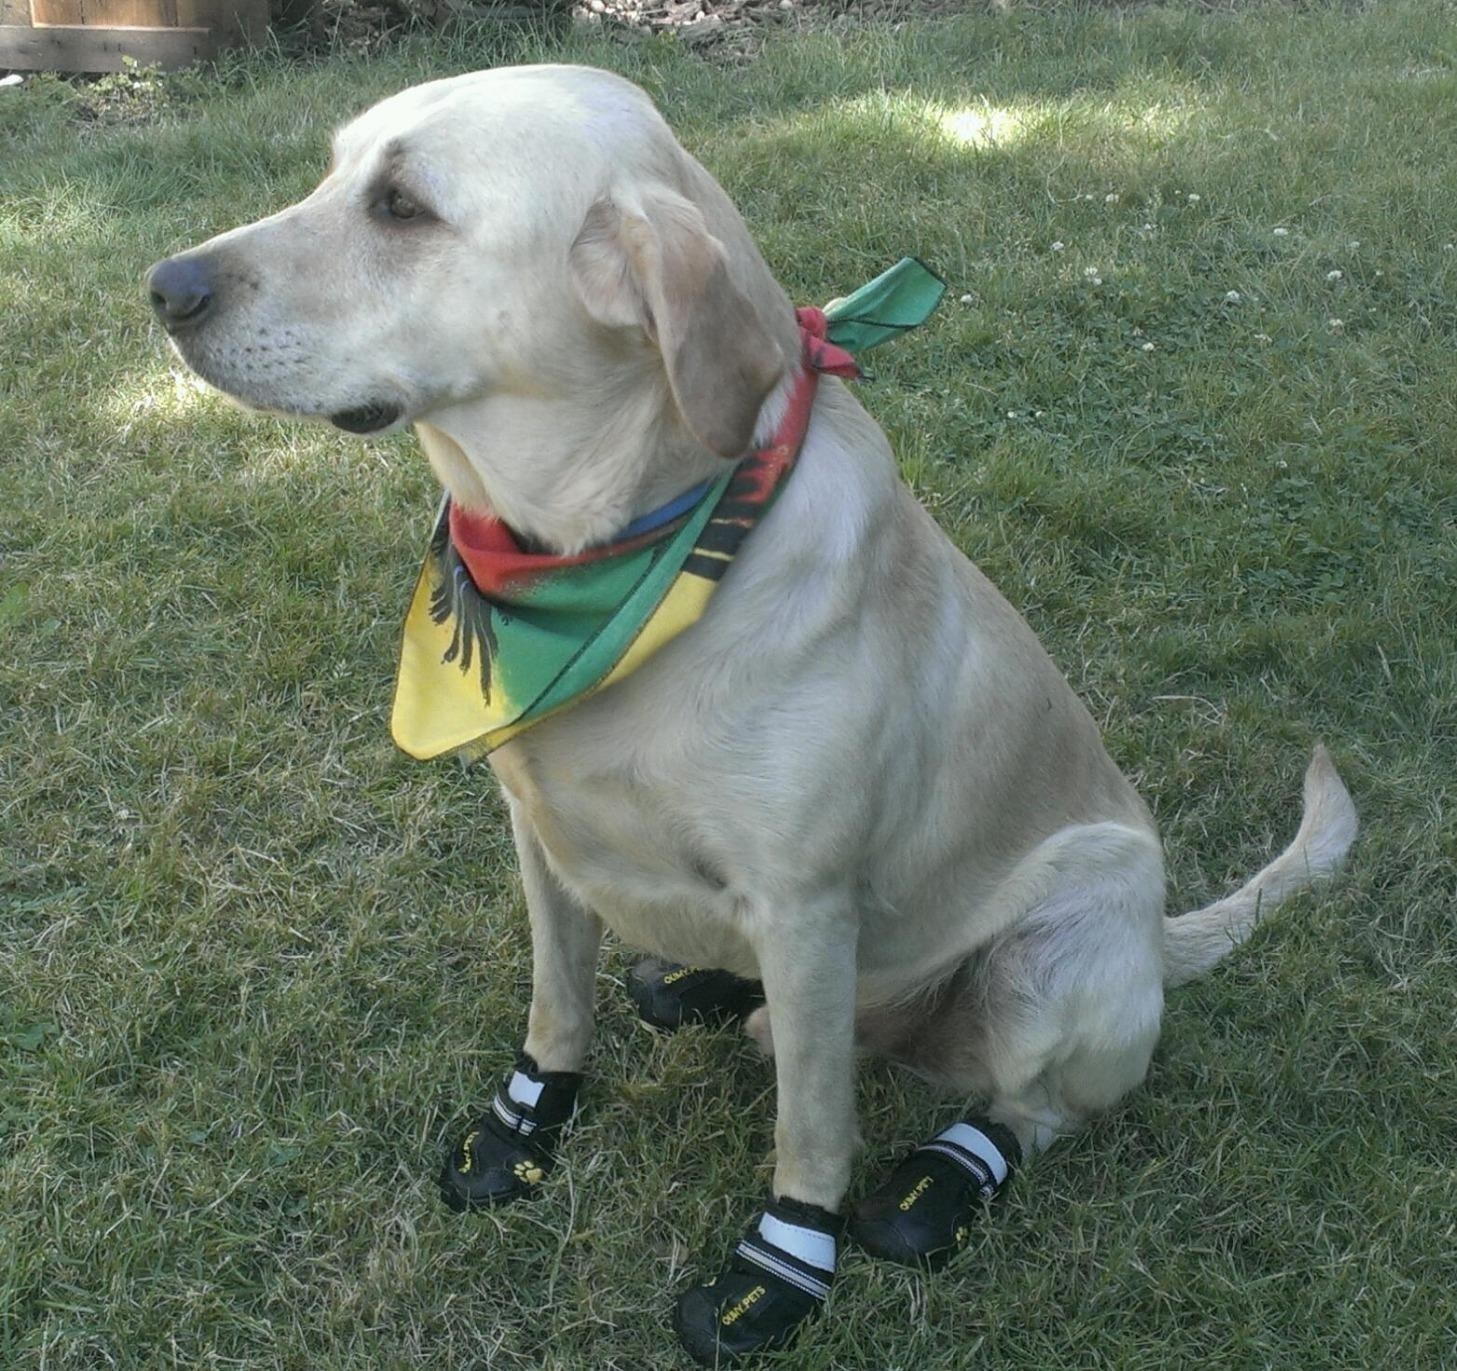 The booties, which secure around the dog's ankle with velcro